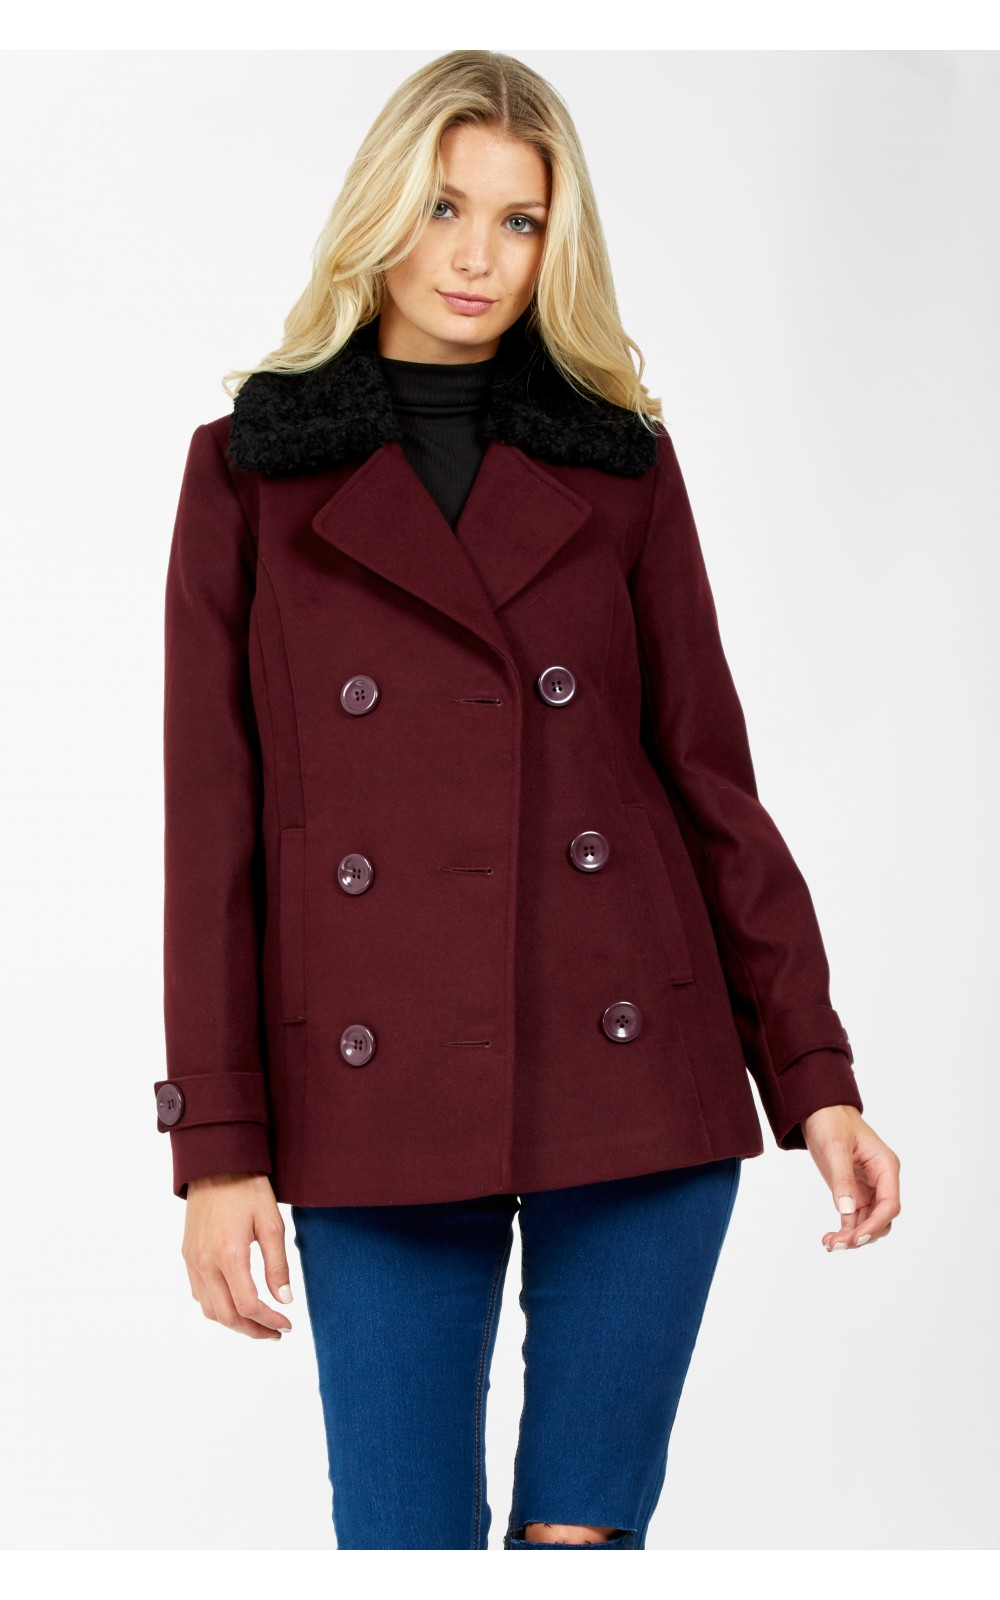 FORMAL PEA COAT Code: #S044/0302/005_BERRY £39.99 now £24.99 Click to visit Select